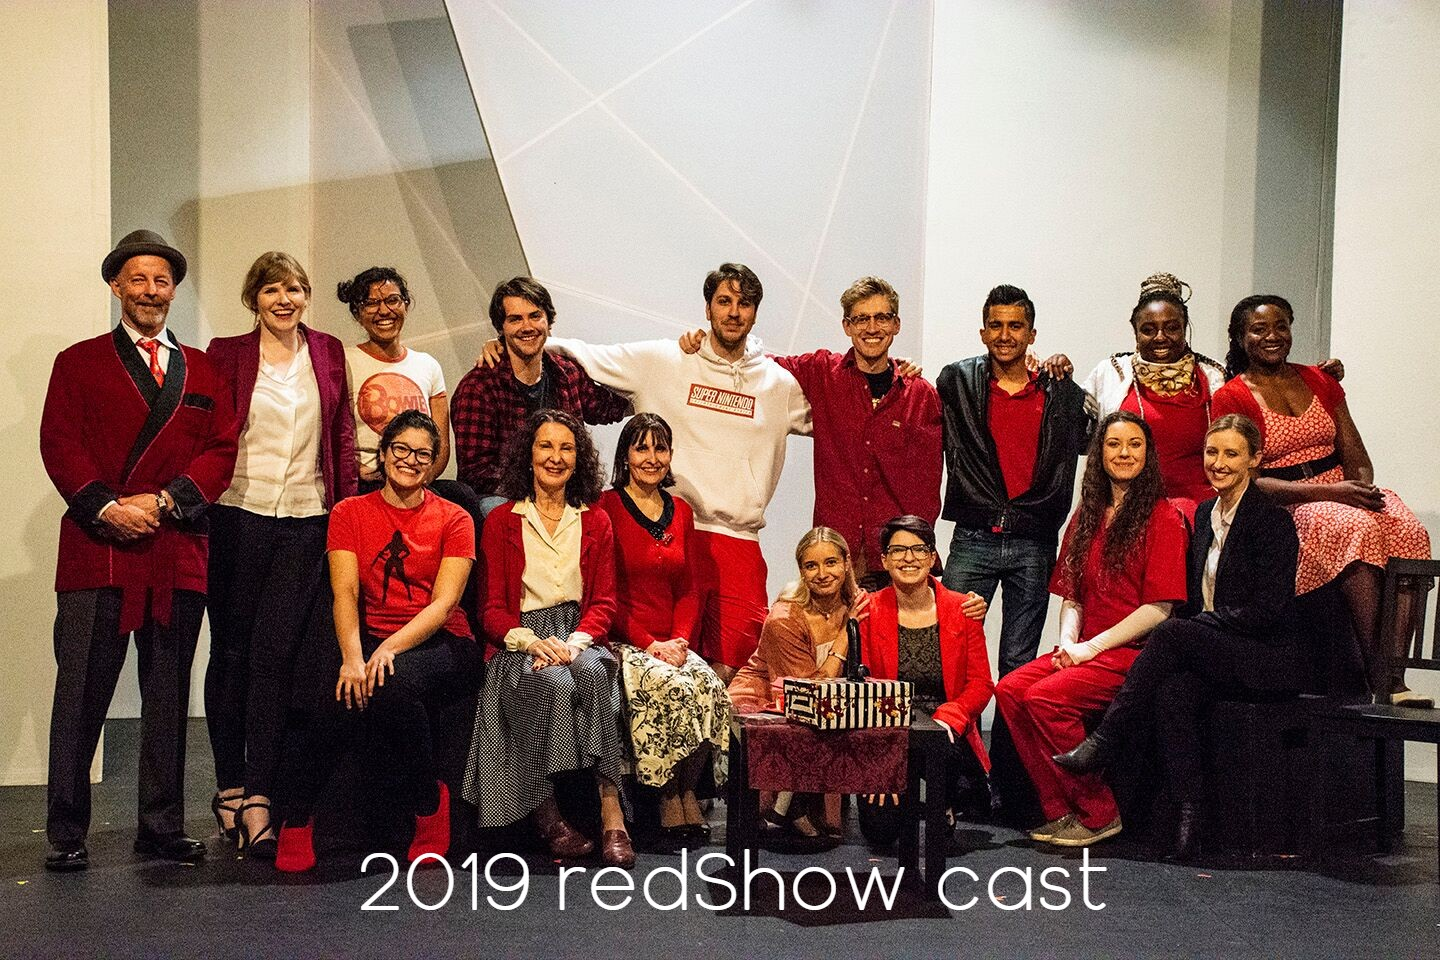 redShow cast - 2019.jpg